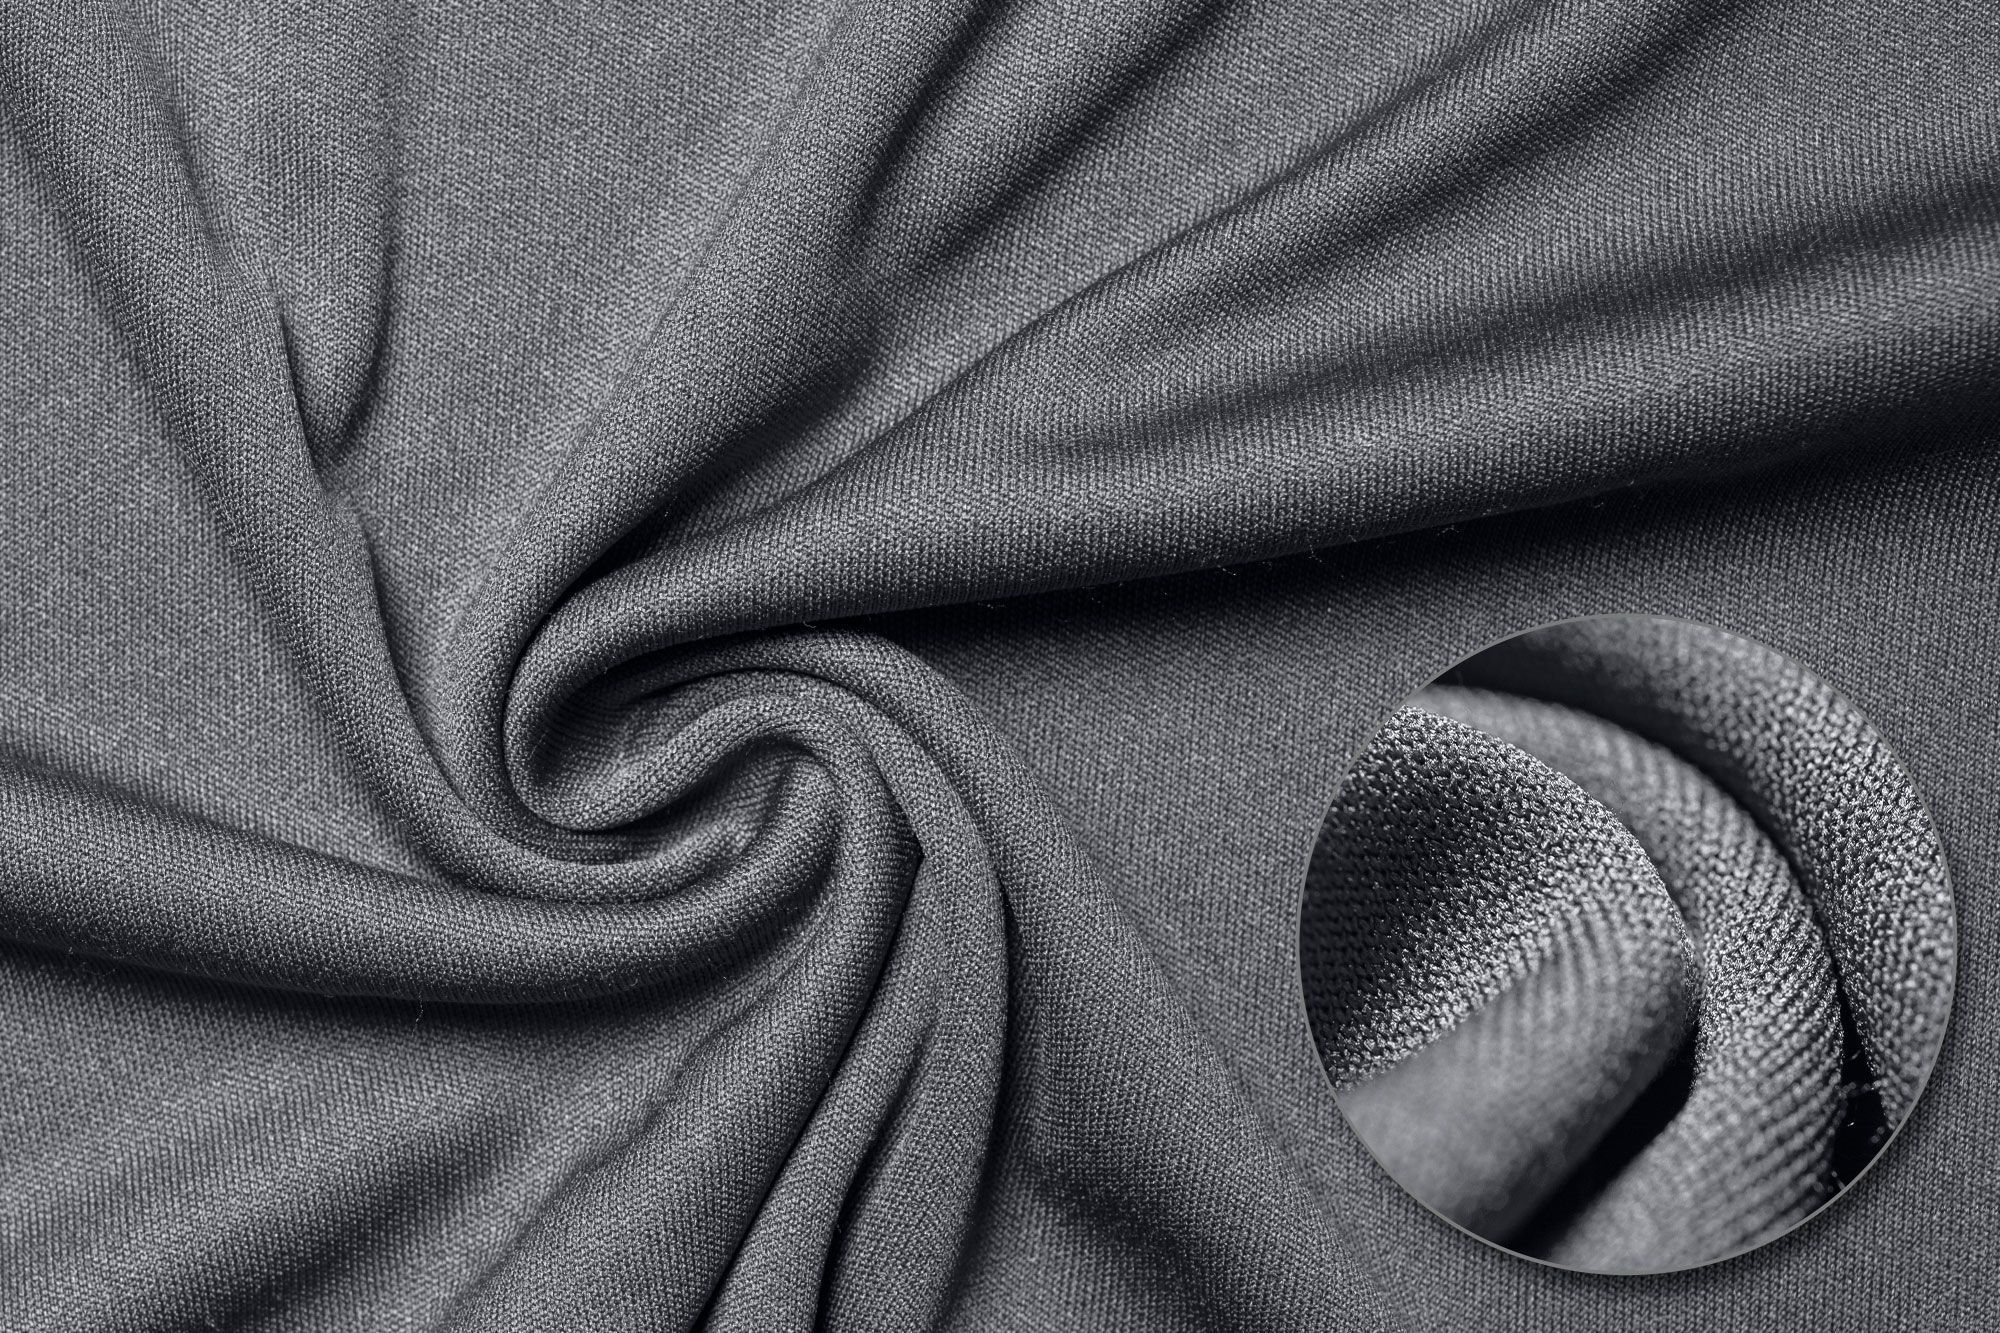 A detail shot of polyester fabric.